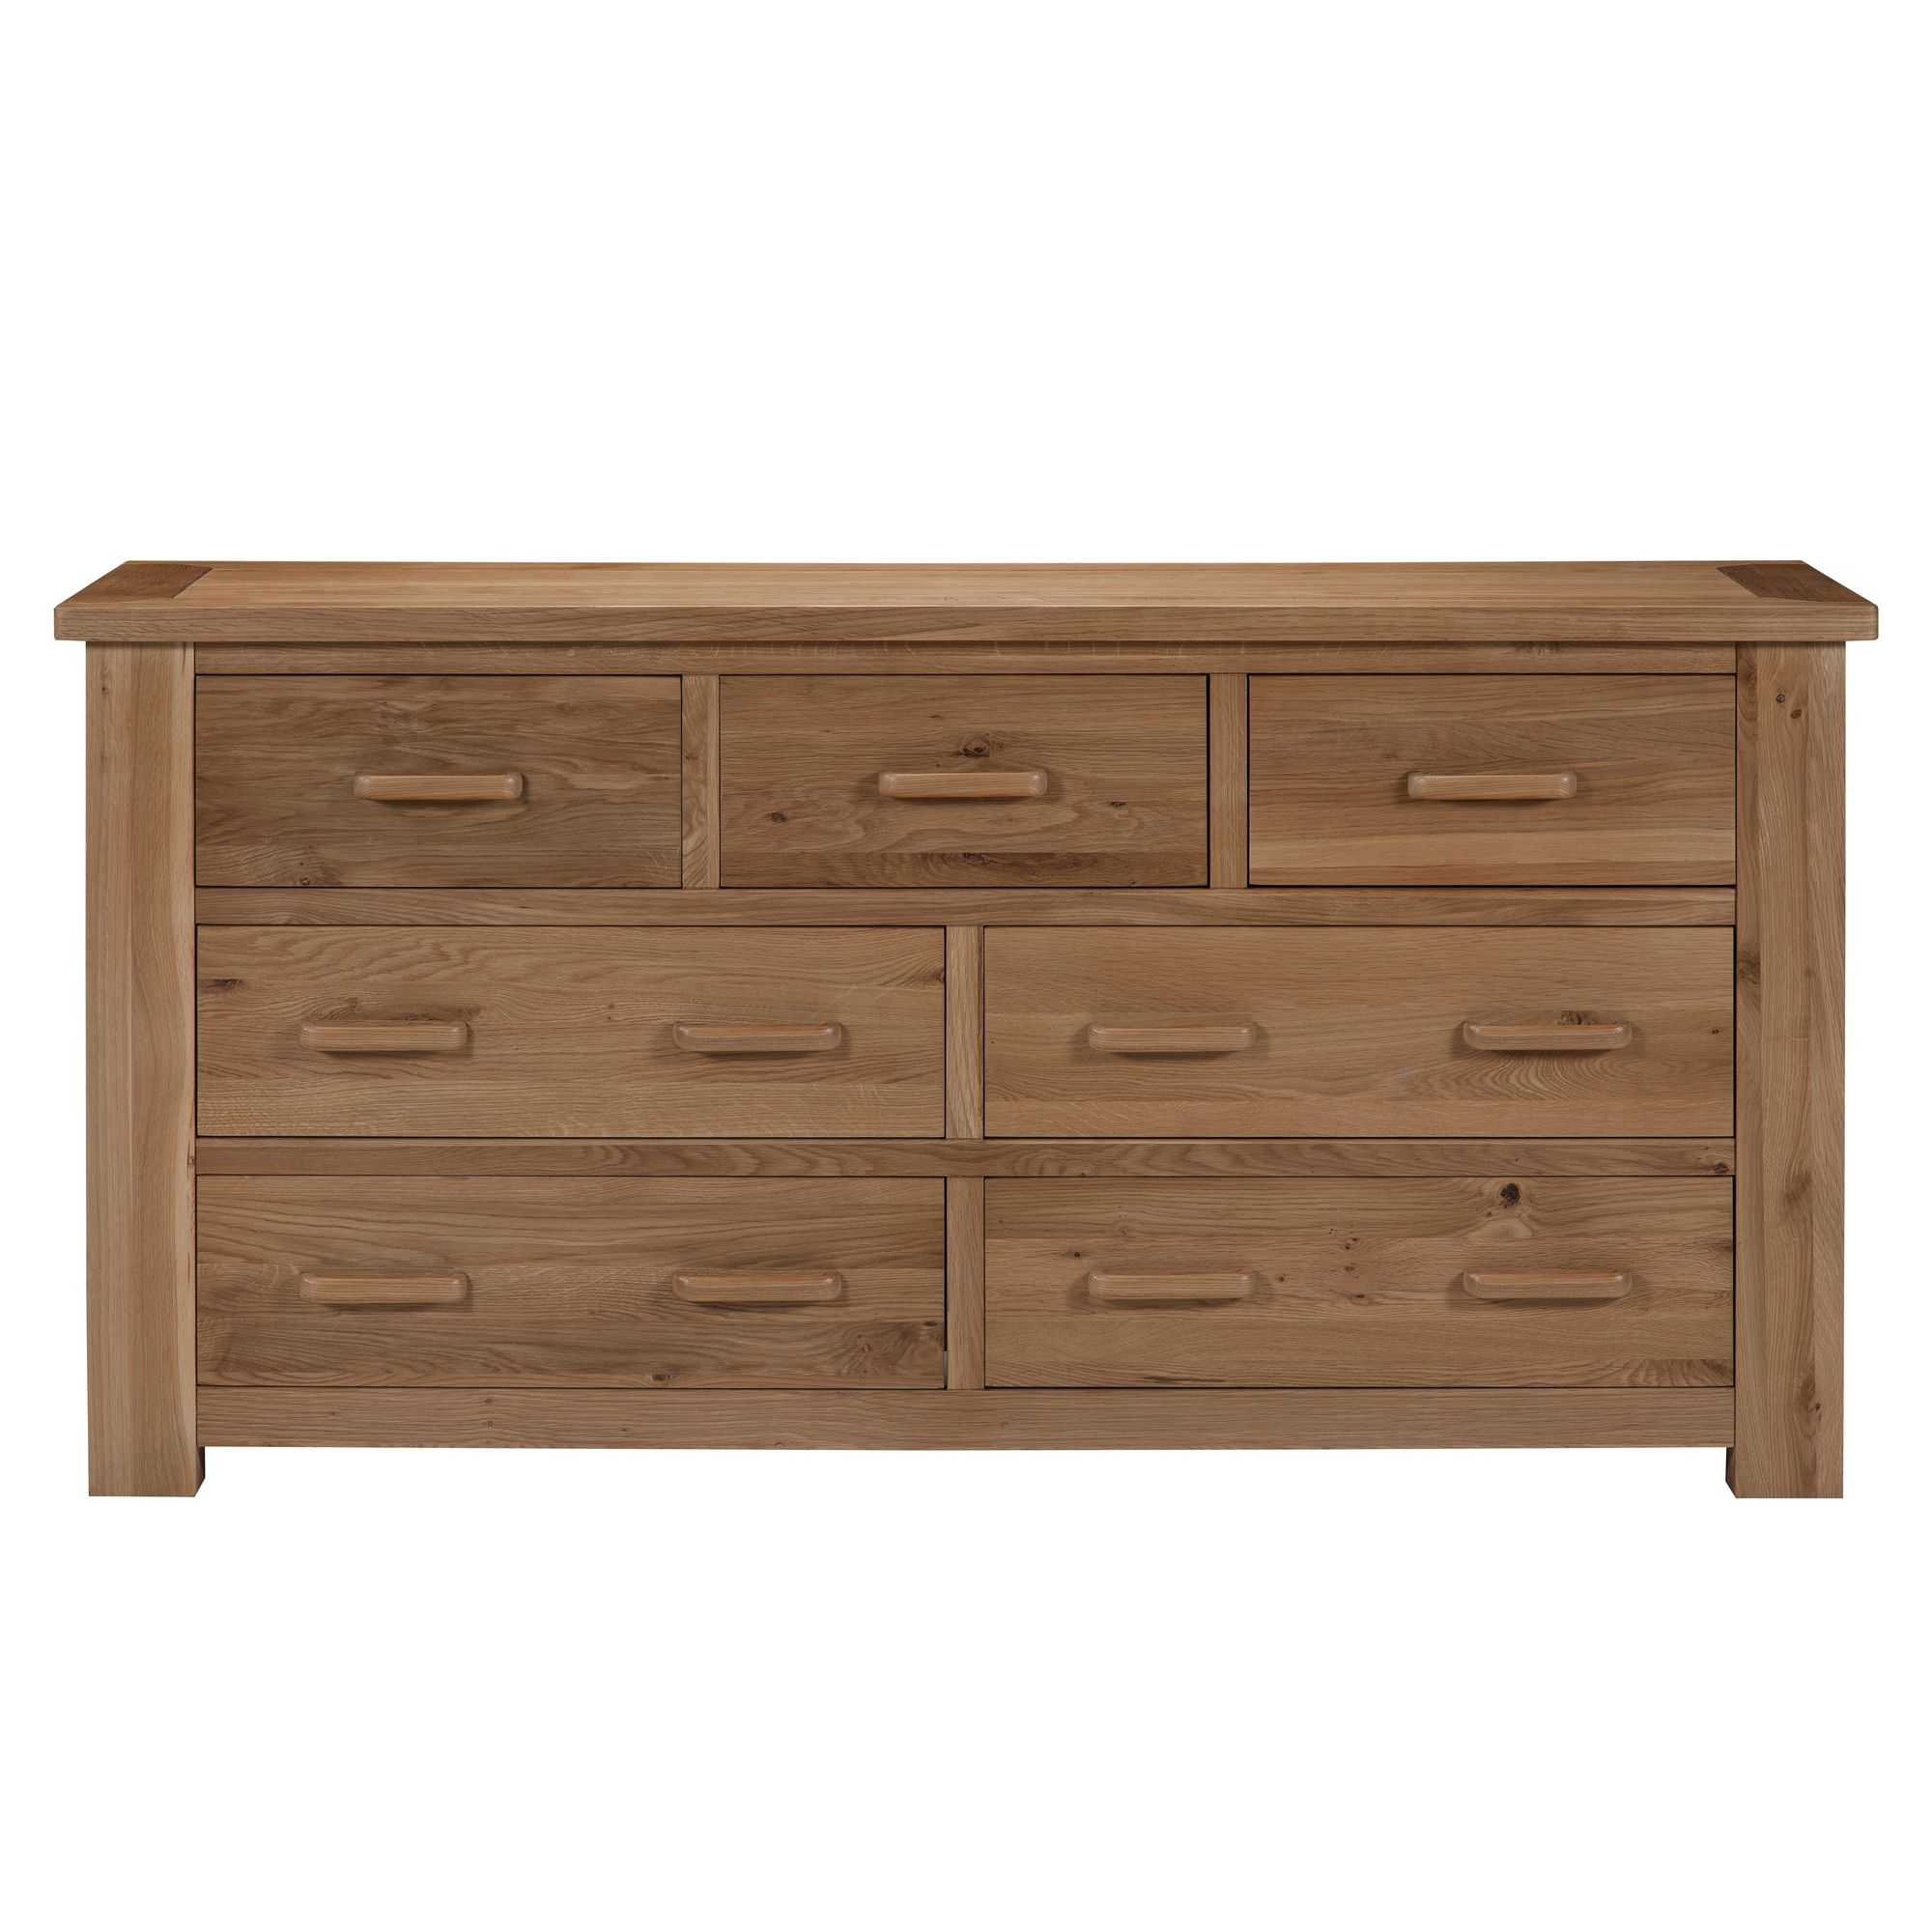 Alterton Furniture Wiltshire 3 By 4 Drawer Multi Chest at Tesco Direct